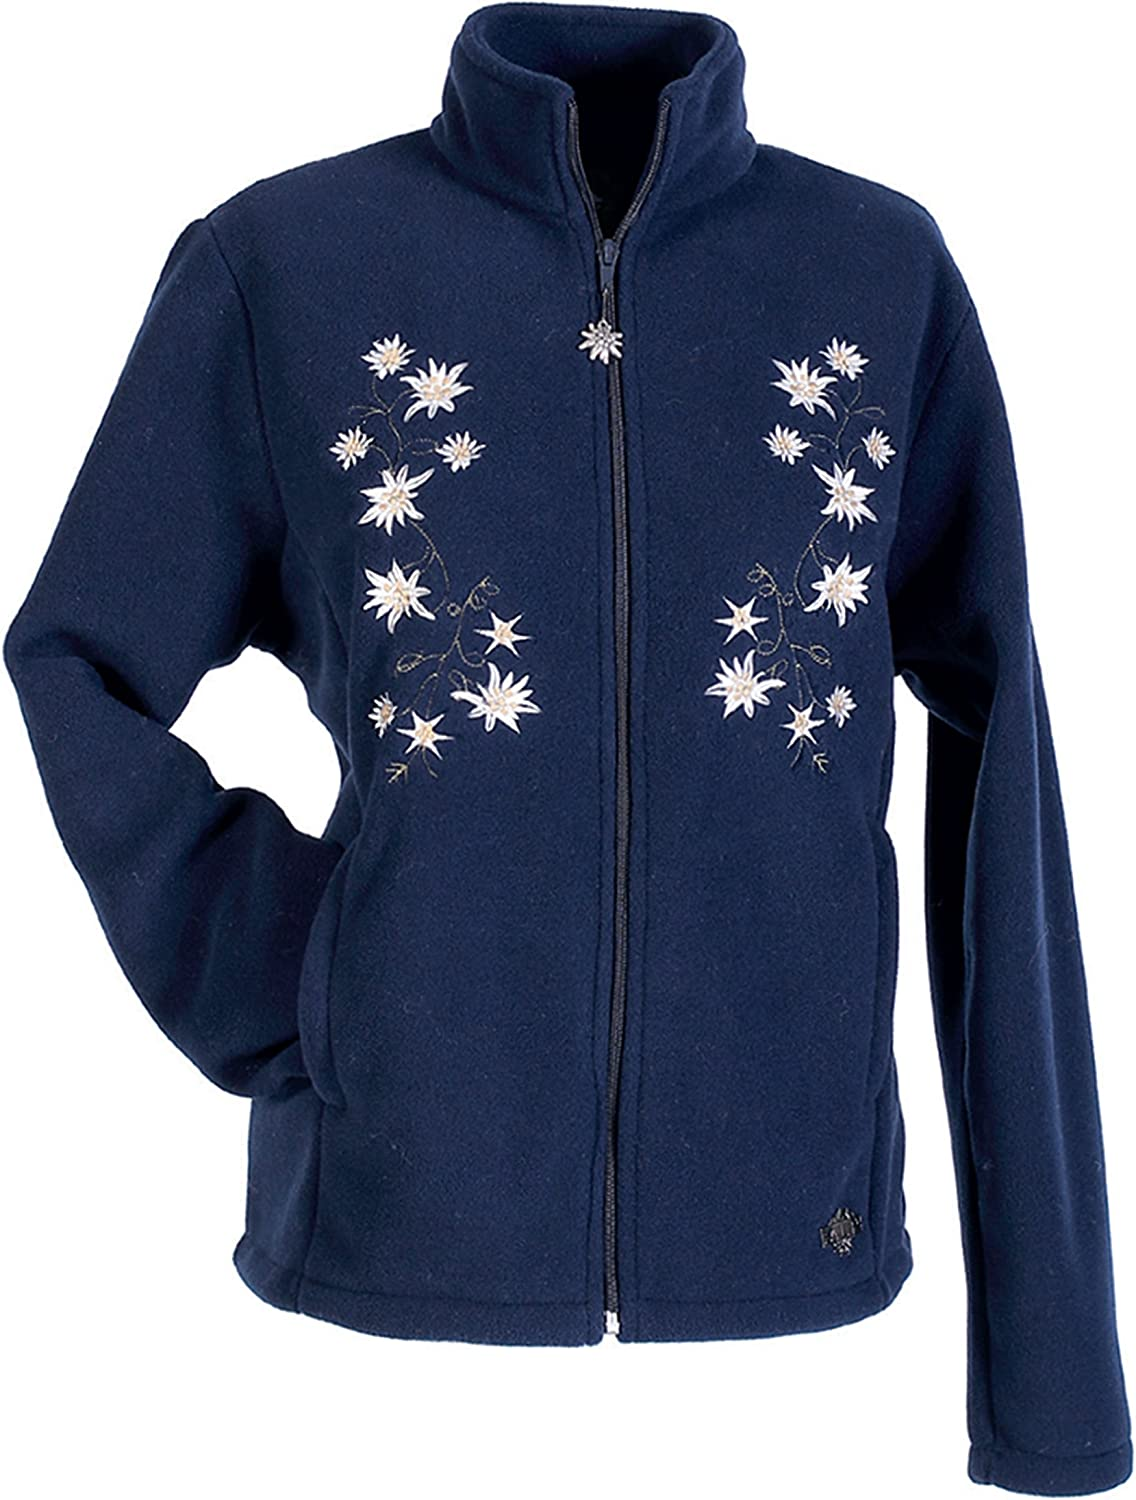 Alp by Brush Ladies Fleece Jacket with Embroidery